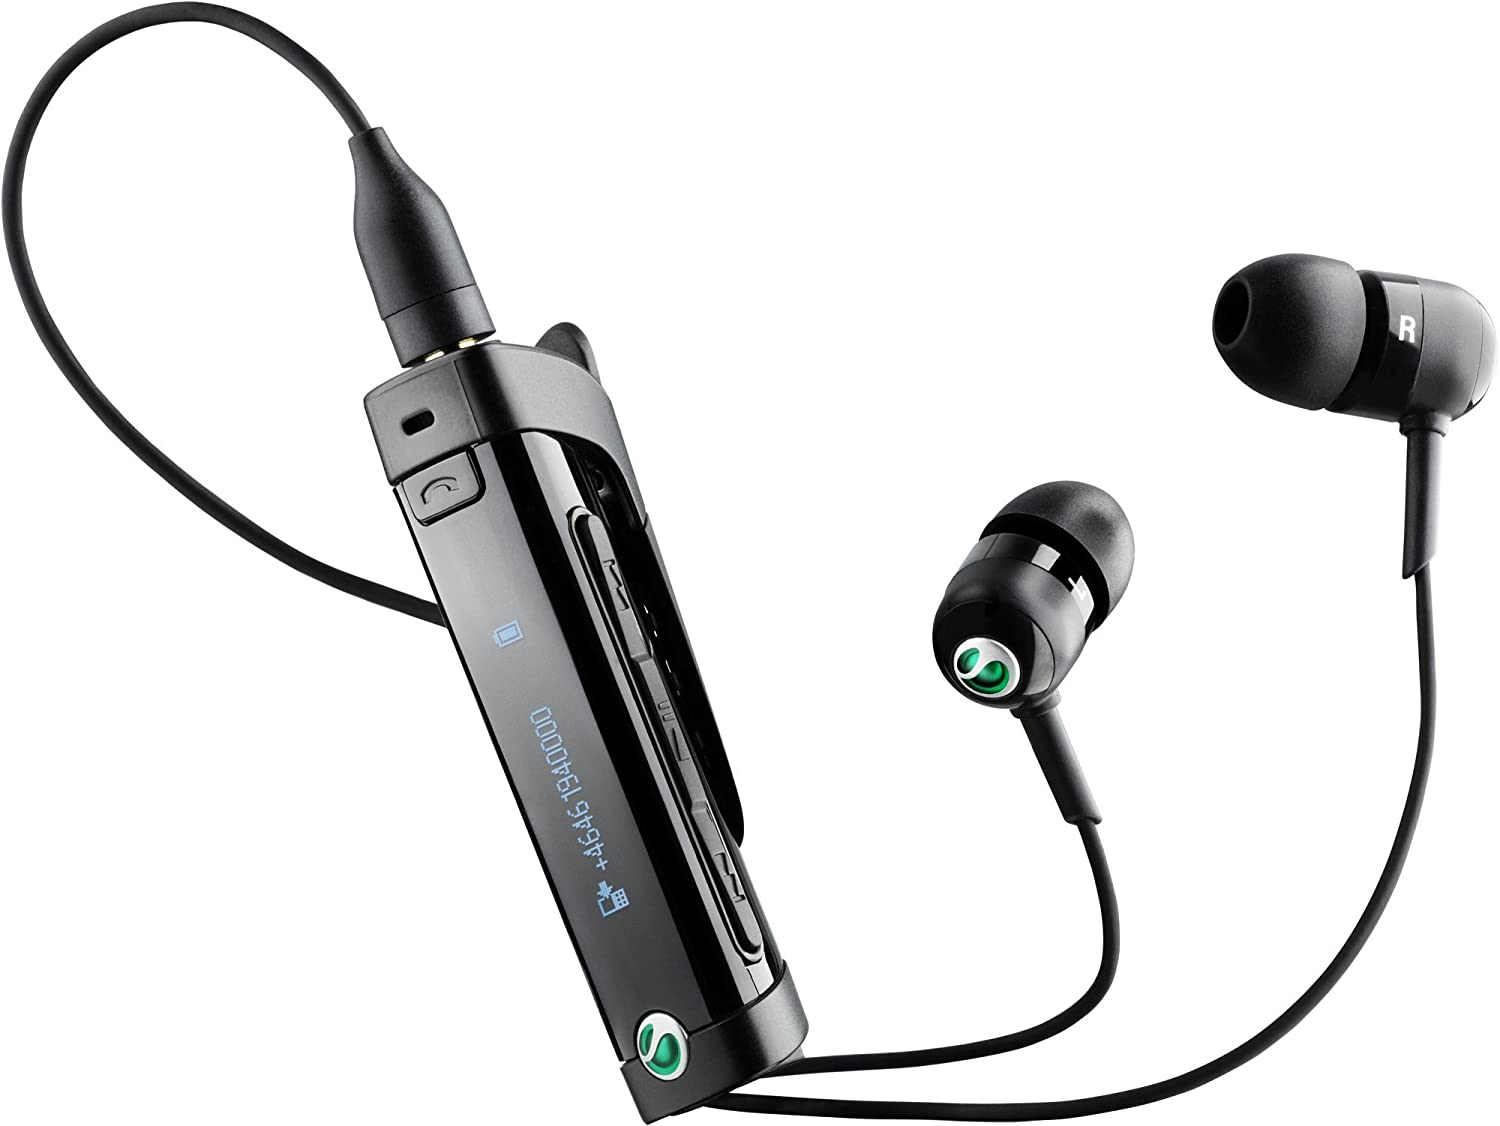 SONY ERICSSON MW600 BLUETOOTH HEADSET DRIVERS FOR WINDOWS DOWNLOAD